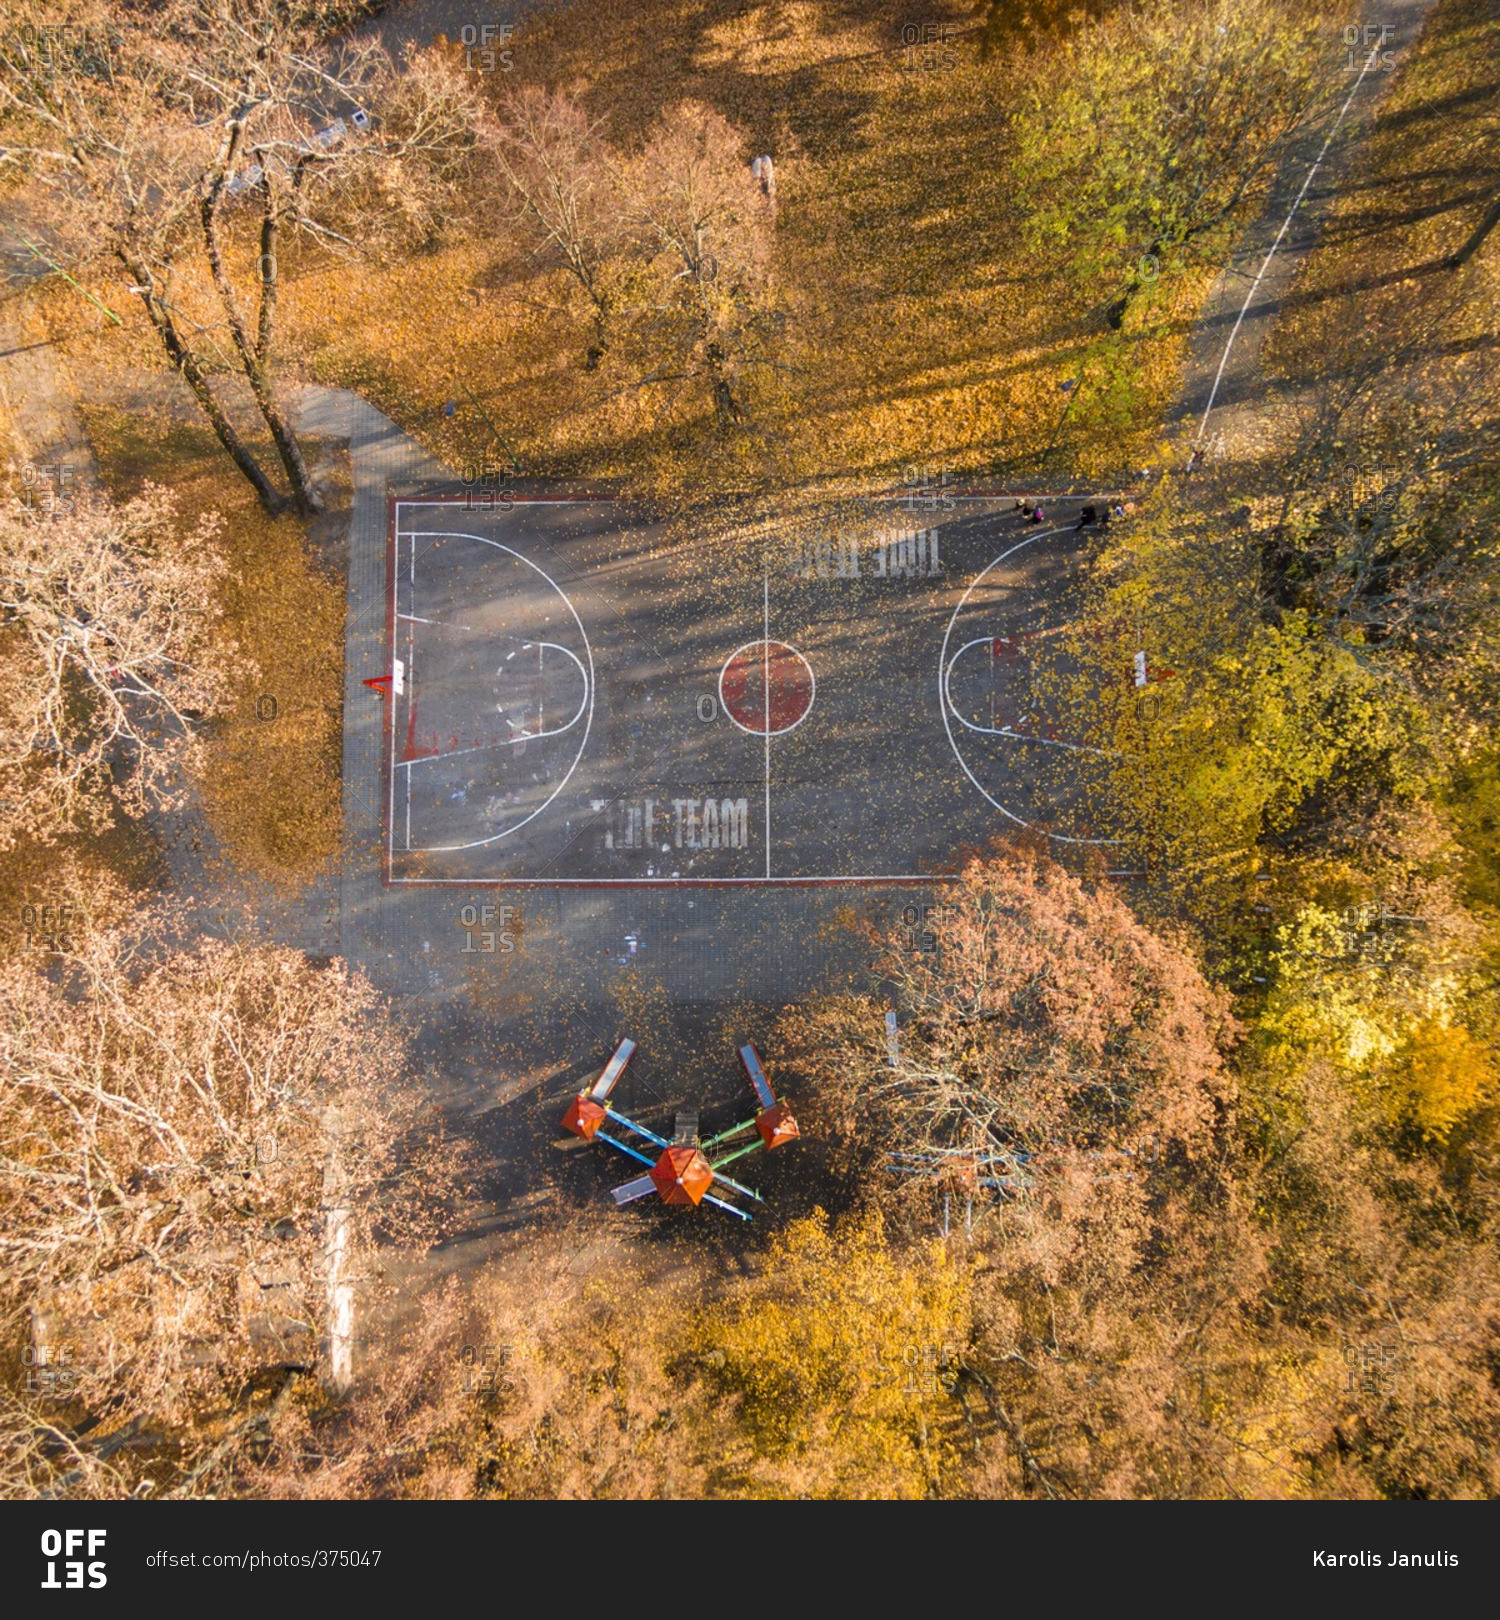 Warriors Path State Park Basketball Court: Basketball Court And Playground Equipment In An Autumn